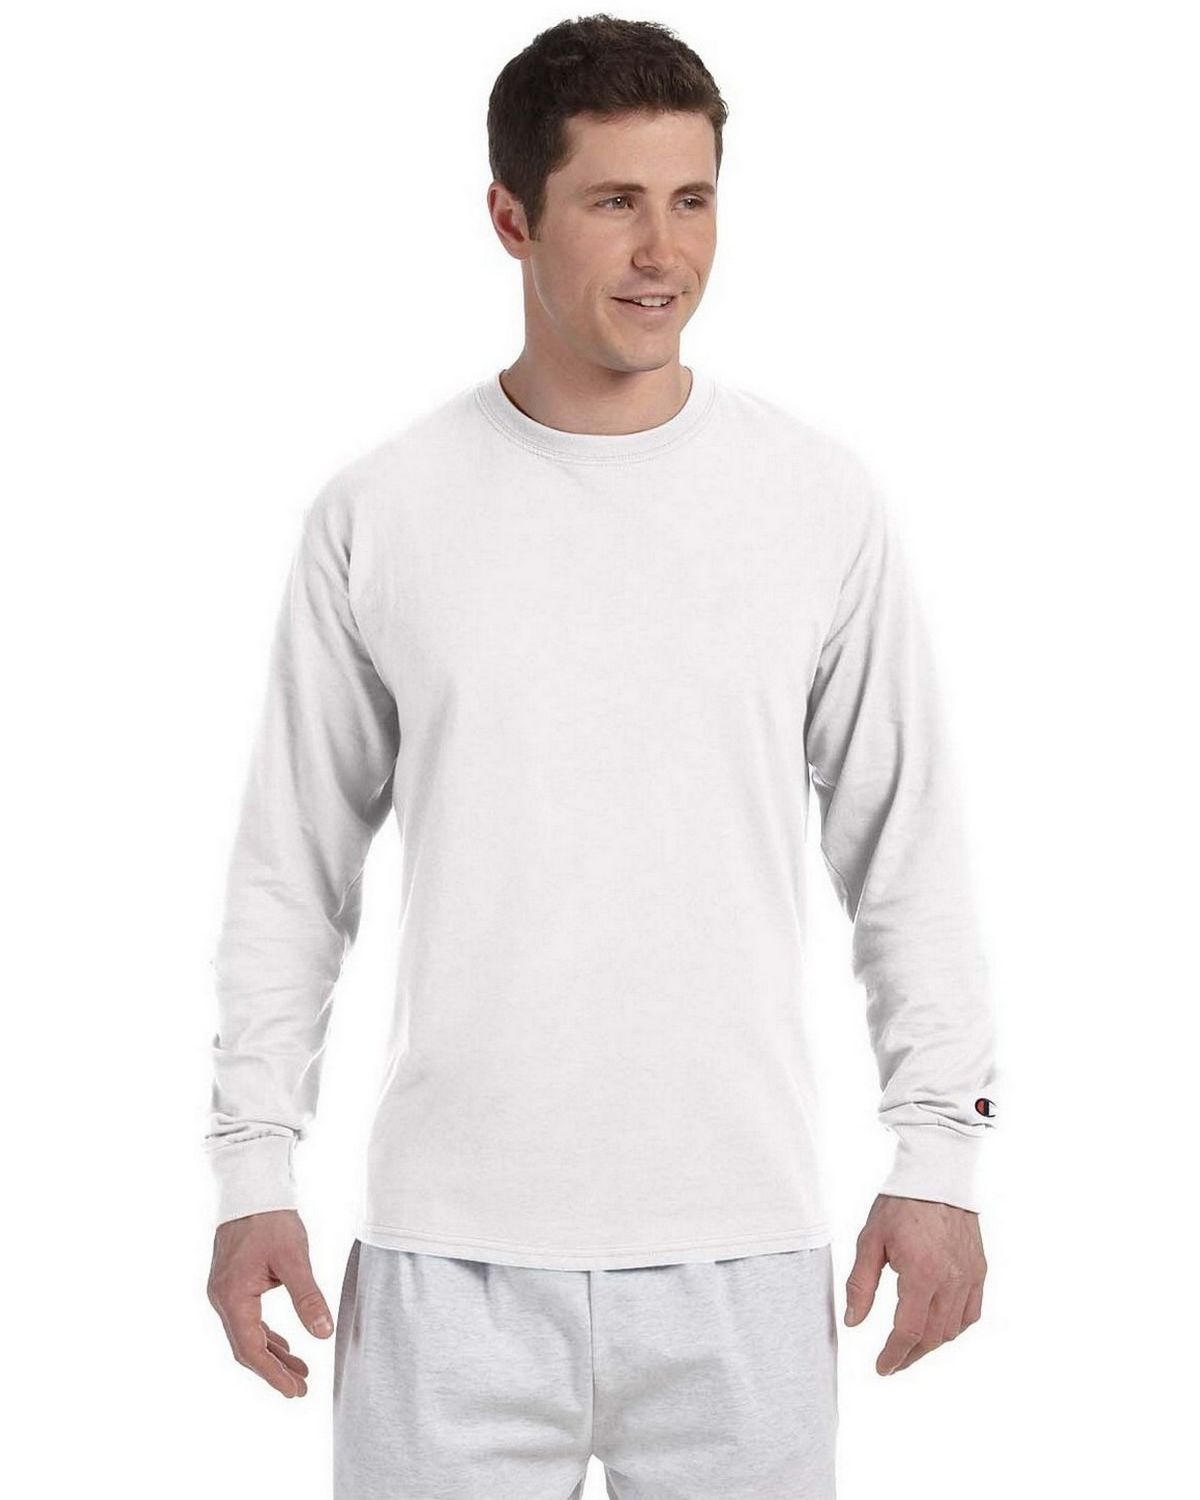 big and tall t-shirt Security uniform costume tee shirt tall shirts for men